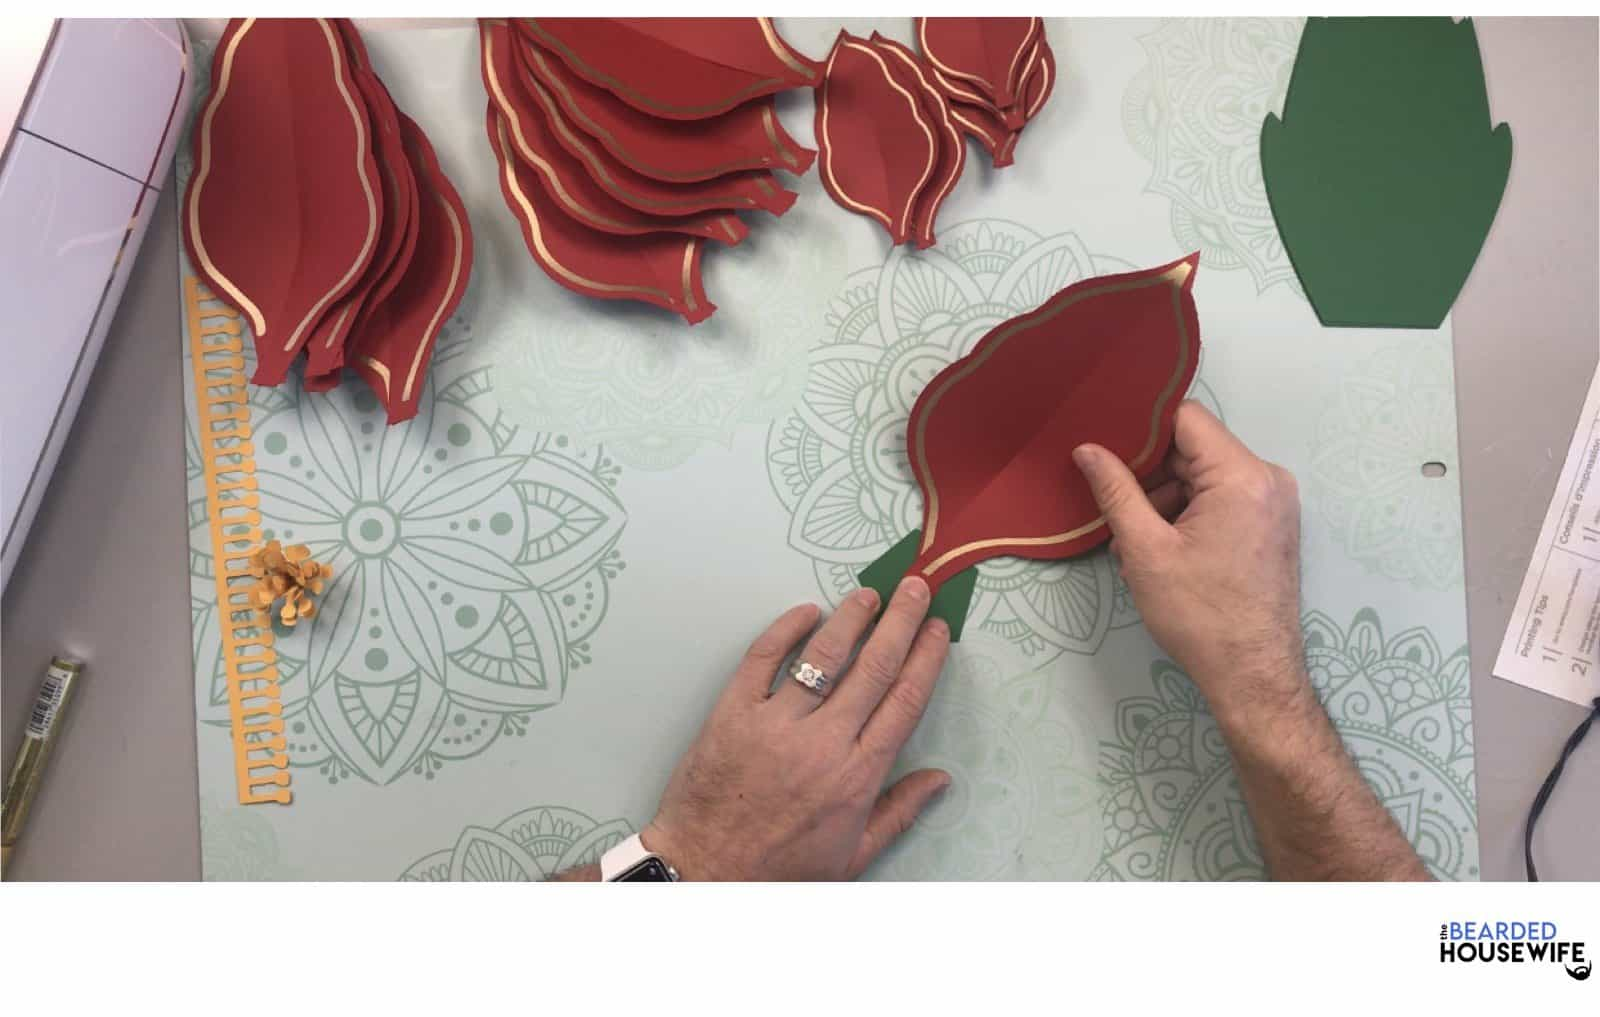 begin layering the poinsettia petals by adding hot glue to the back of one of the larger petals and placing on one side of the pentagon base.